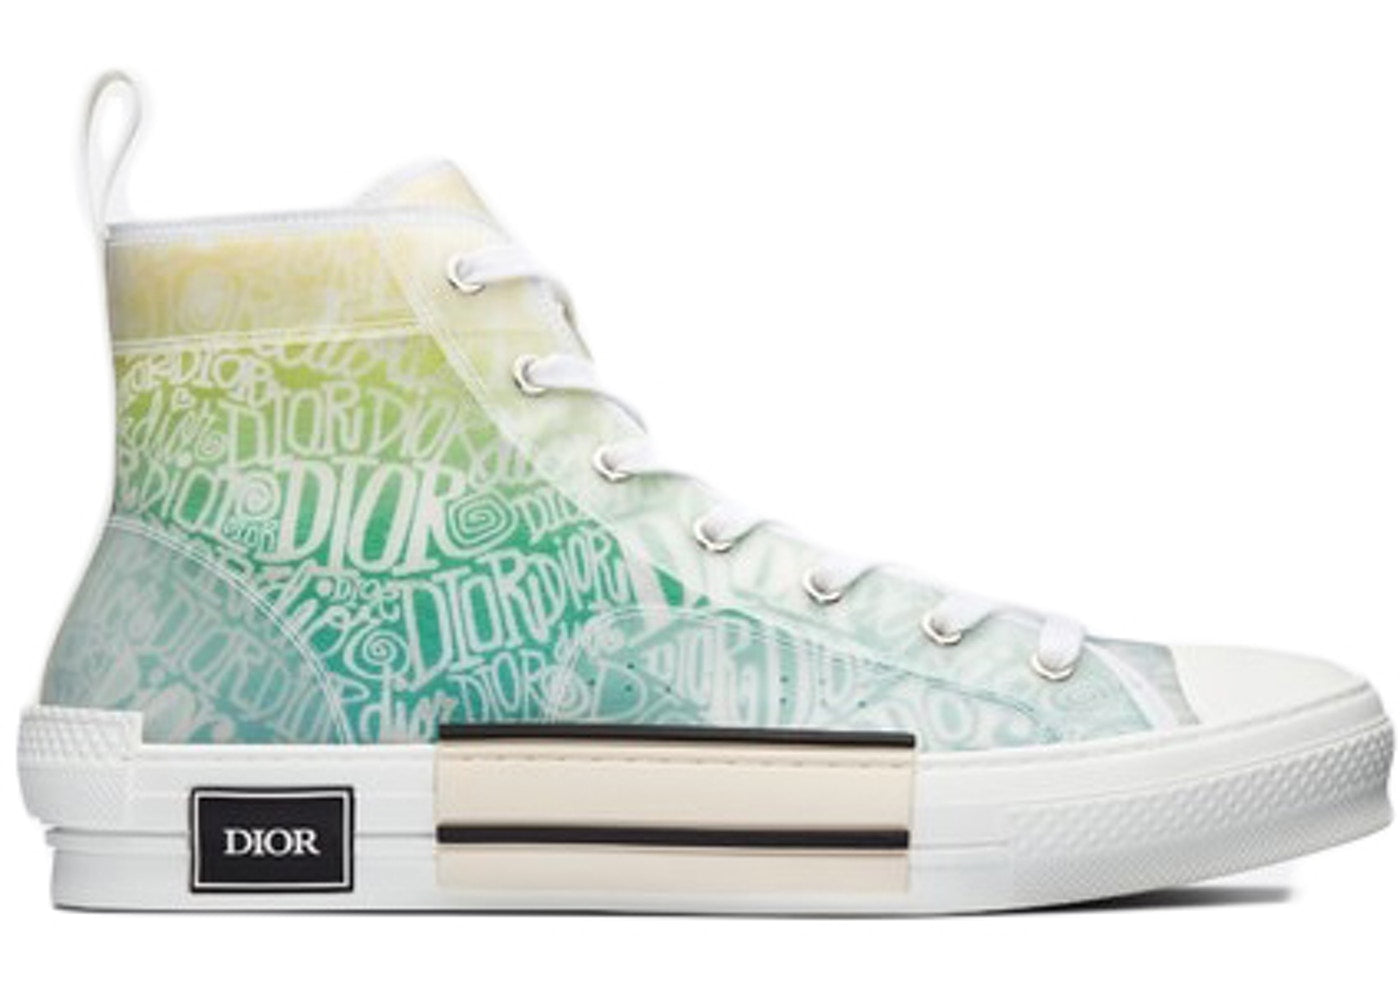 Dior And Shawn B23 High Top